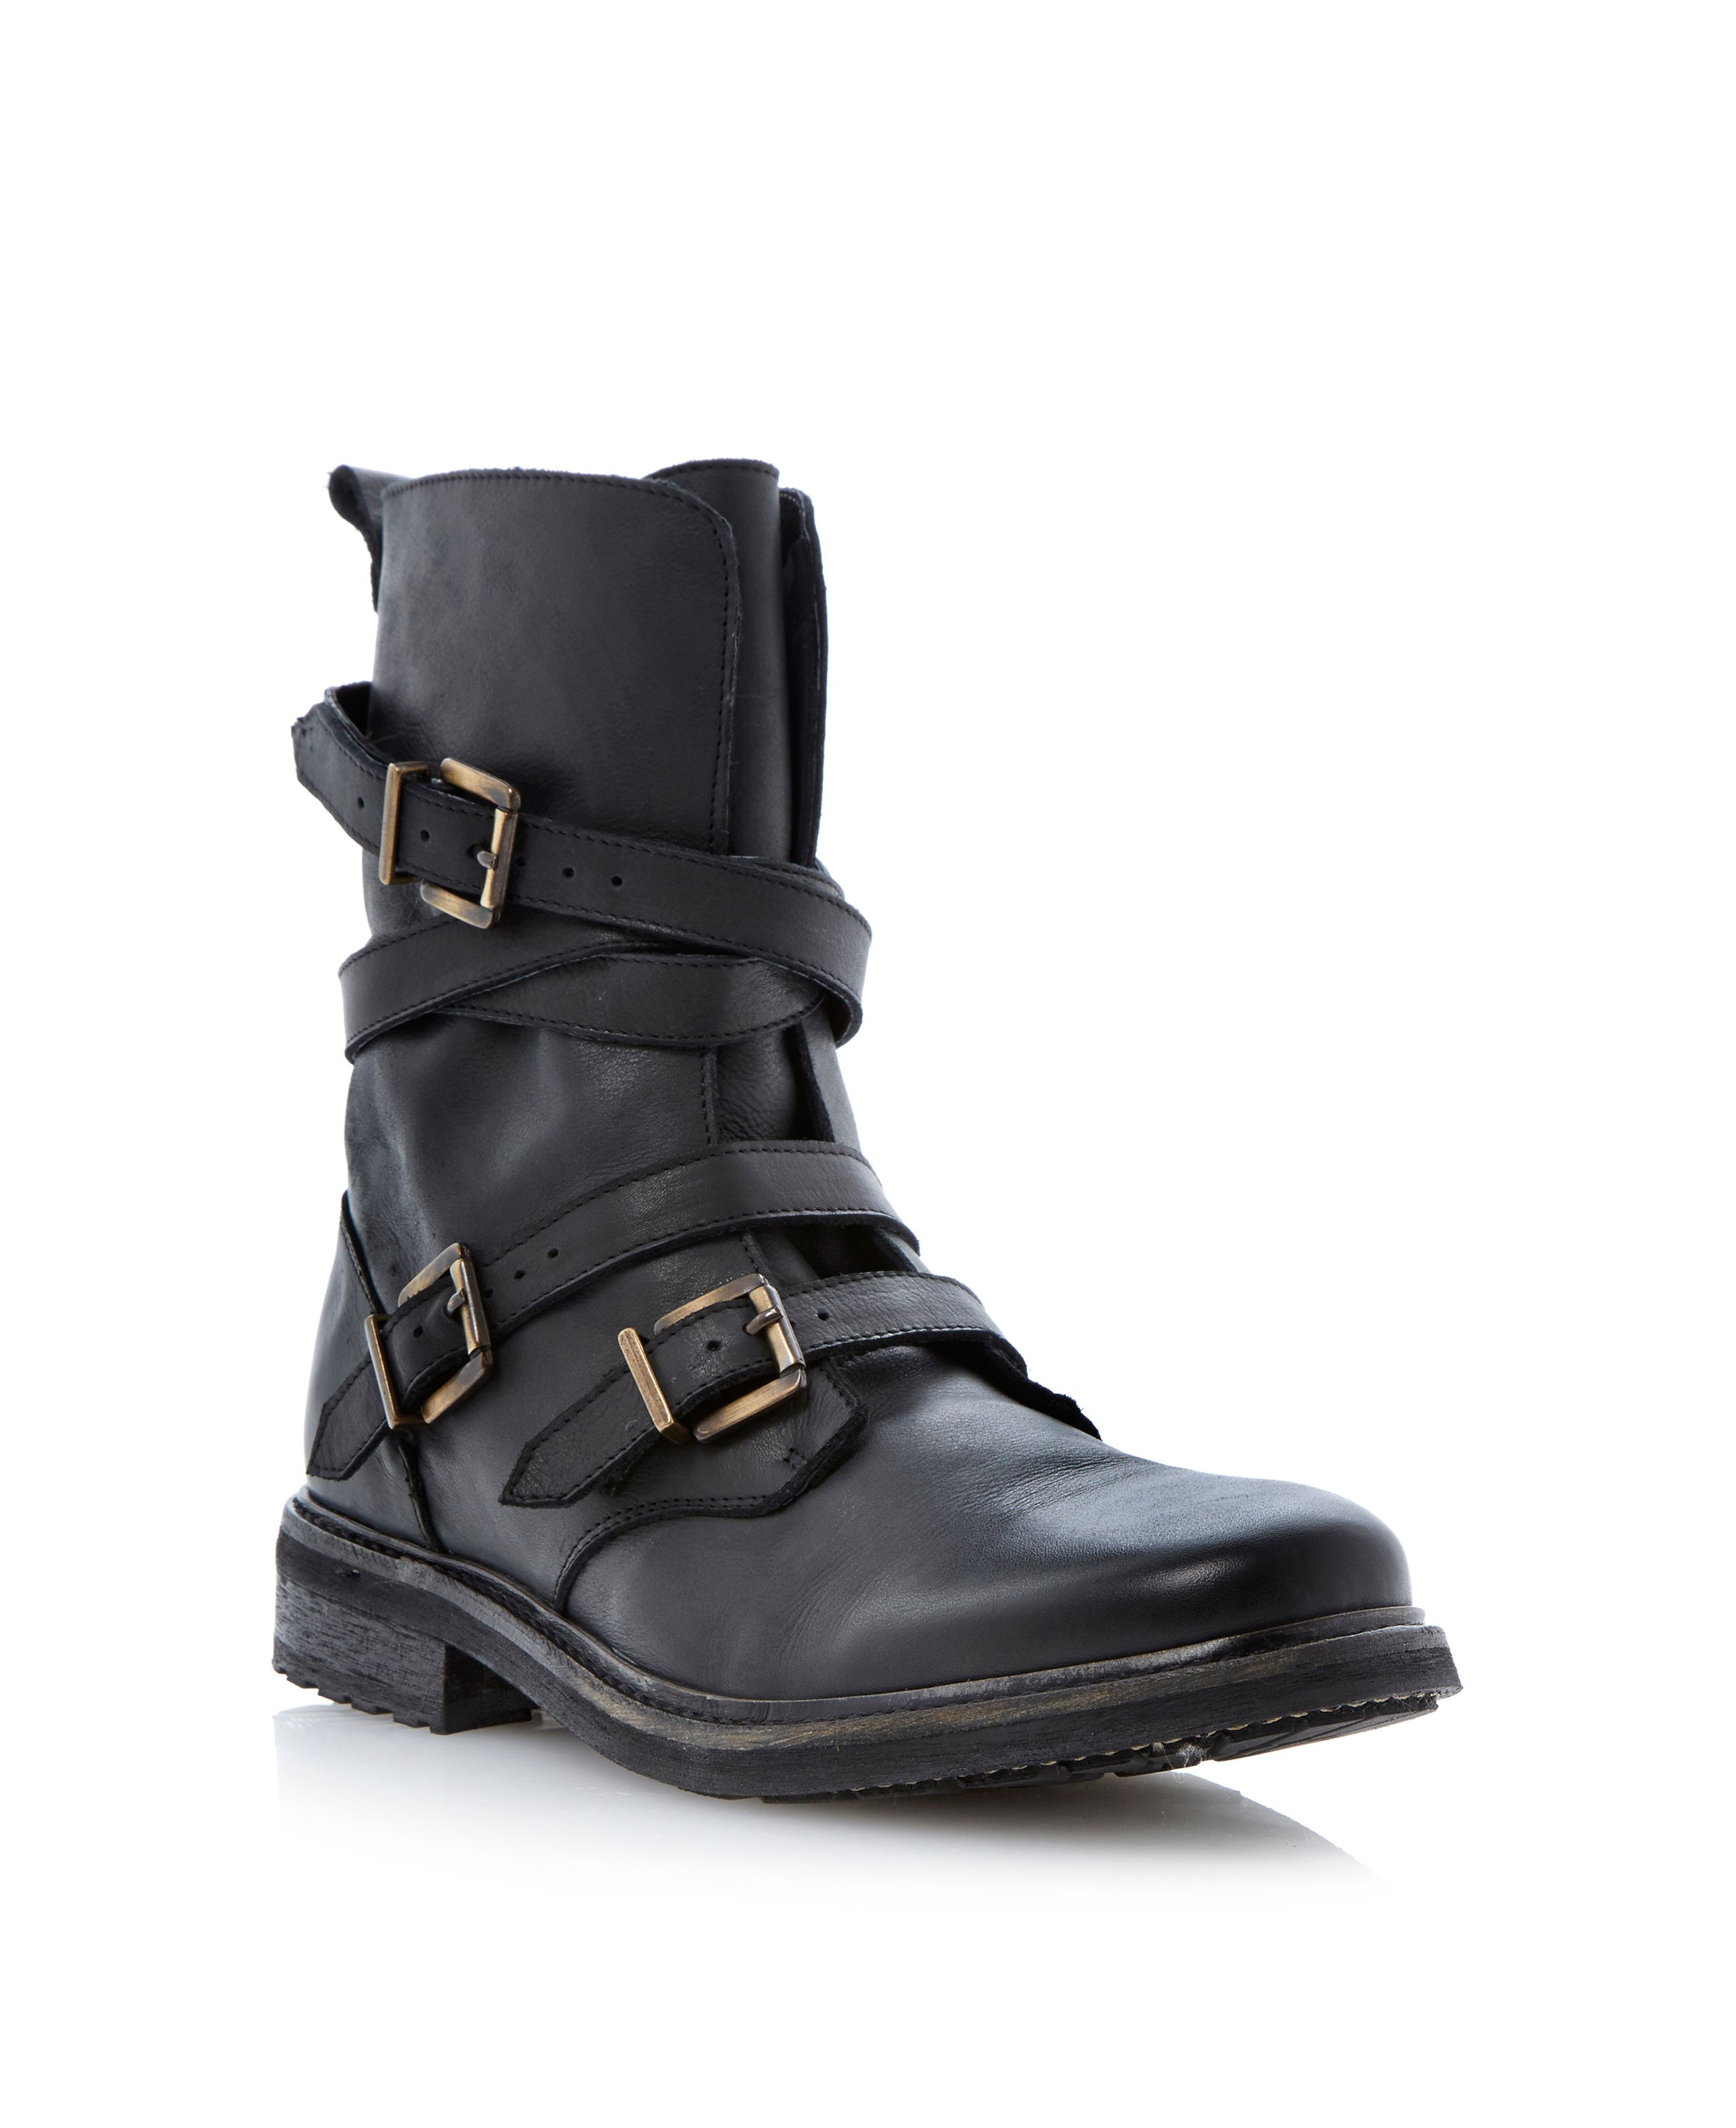 Carboretta strap and buckle biker boot